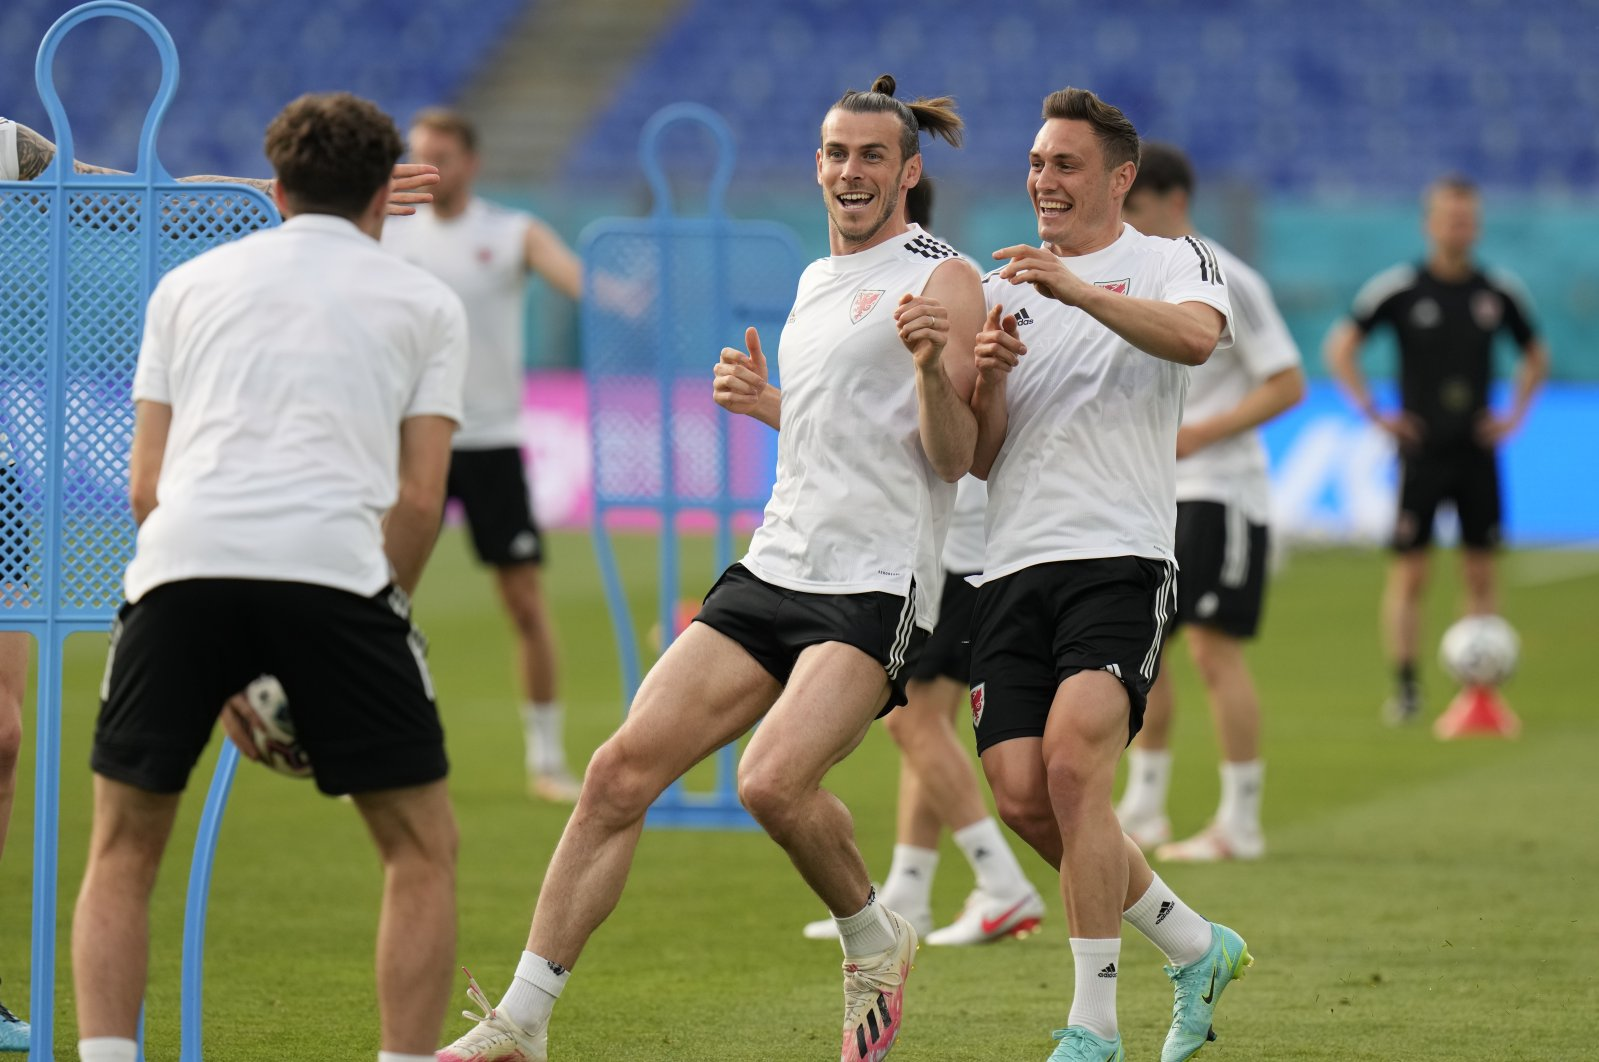 Wales' Gareth Bale (L) and Connor Roberts smile during a team training session at Olympic stadium in Rome, June 19, 2021. (AP Photo)